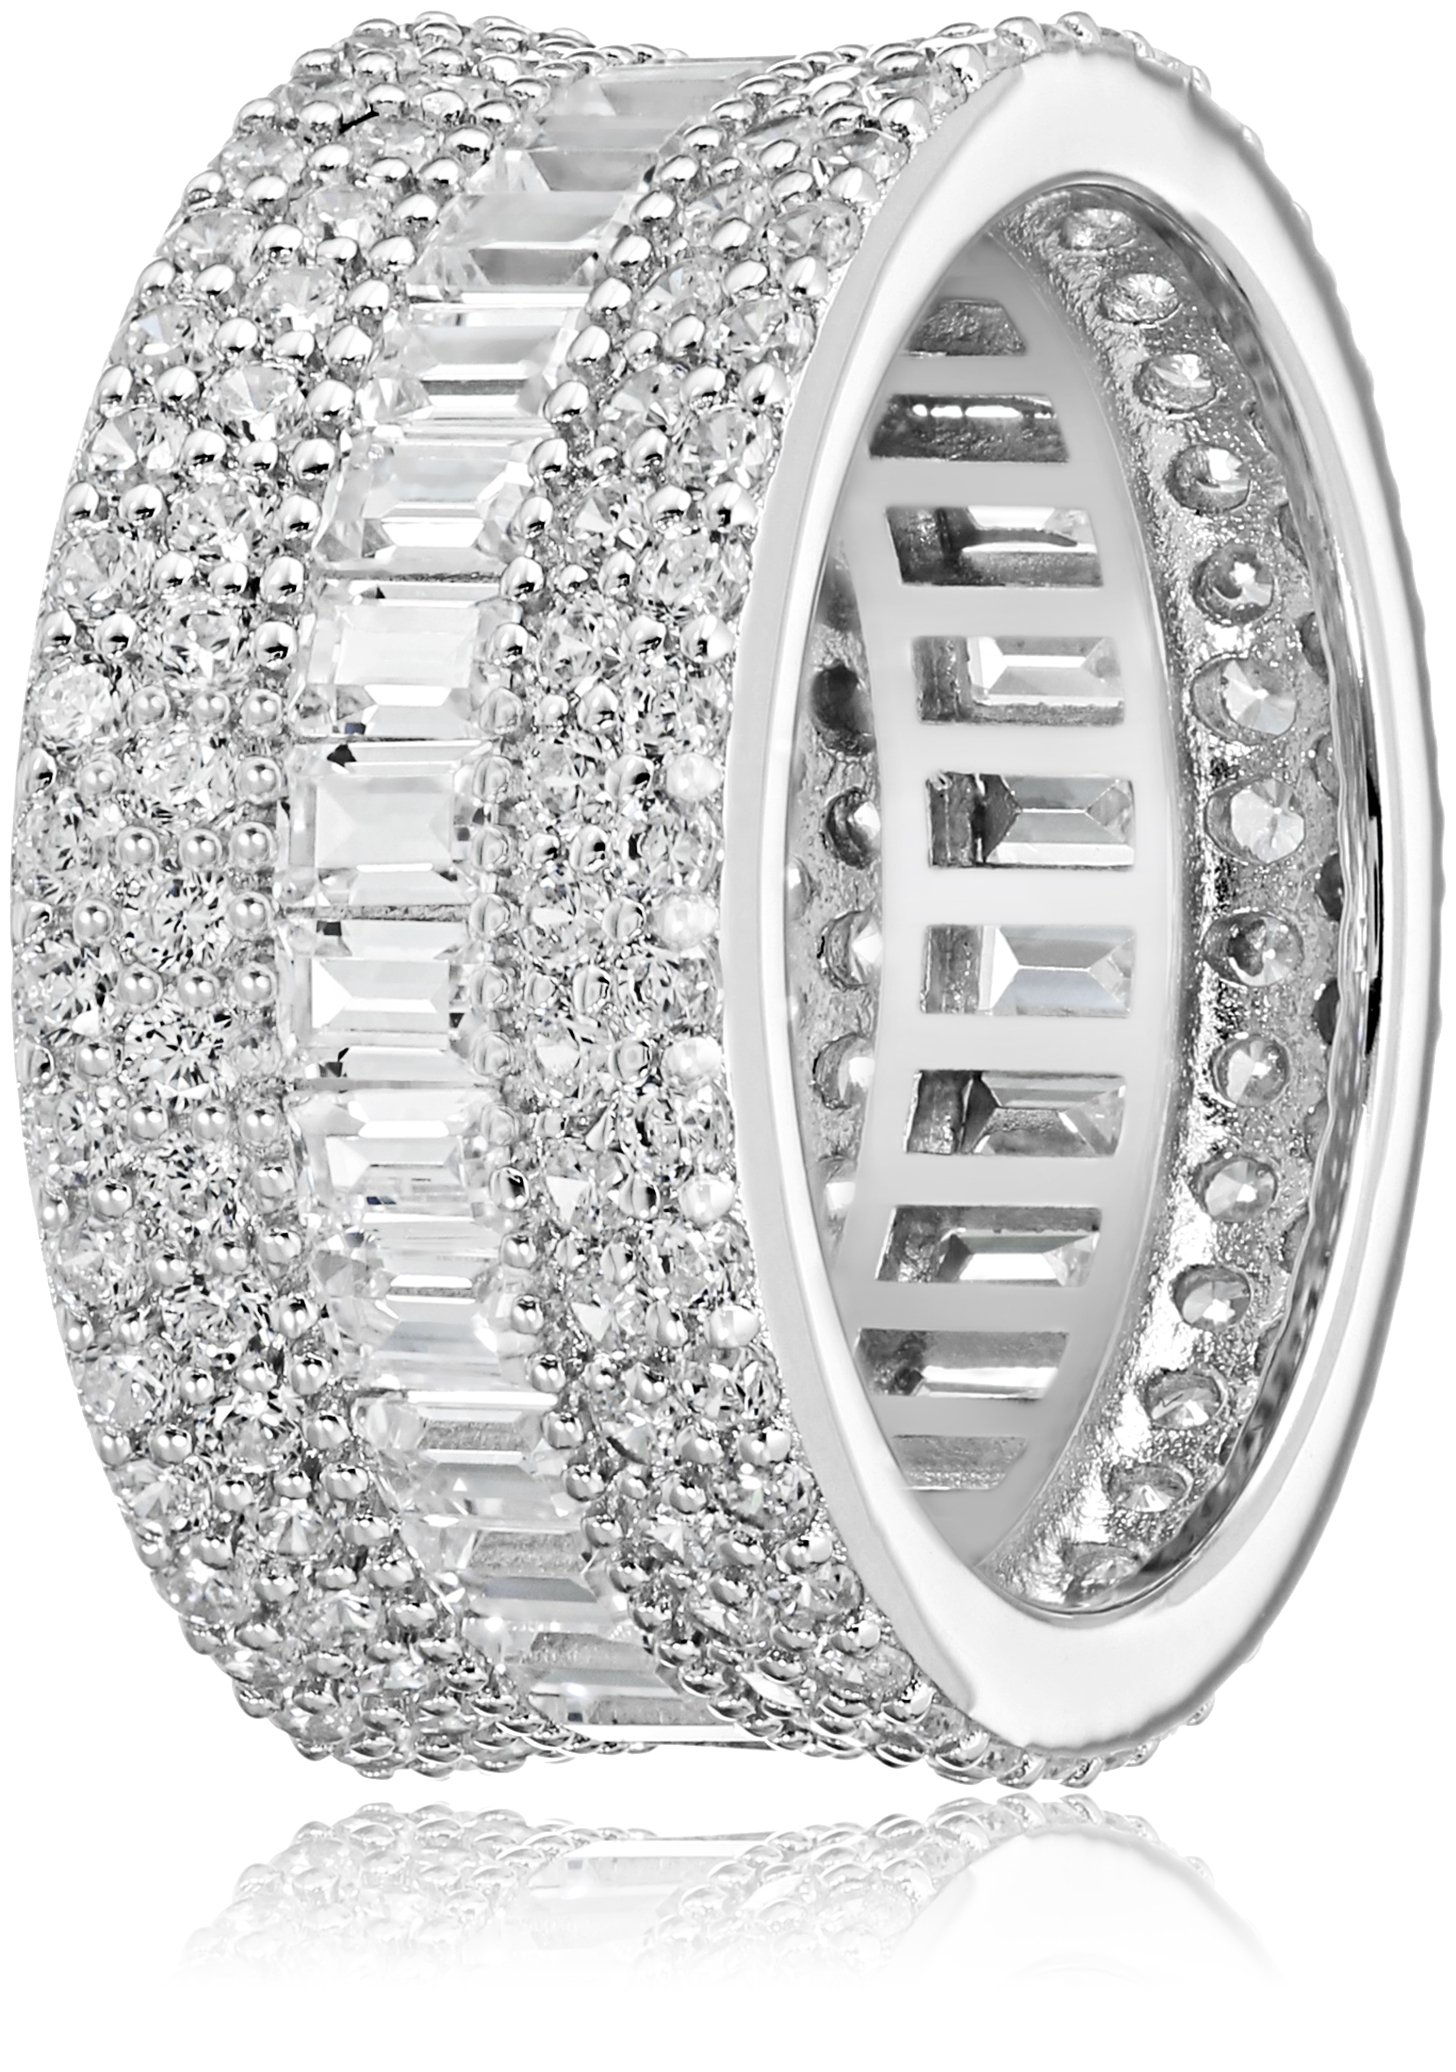 Charles Winston, Sterling Silver, Cubic Zirconia Baguette & Round Band, 5.60 ct. tw., Size 8 by Charles Winston (Image #2)